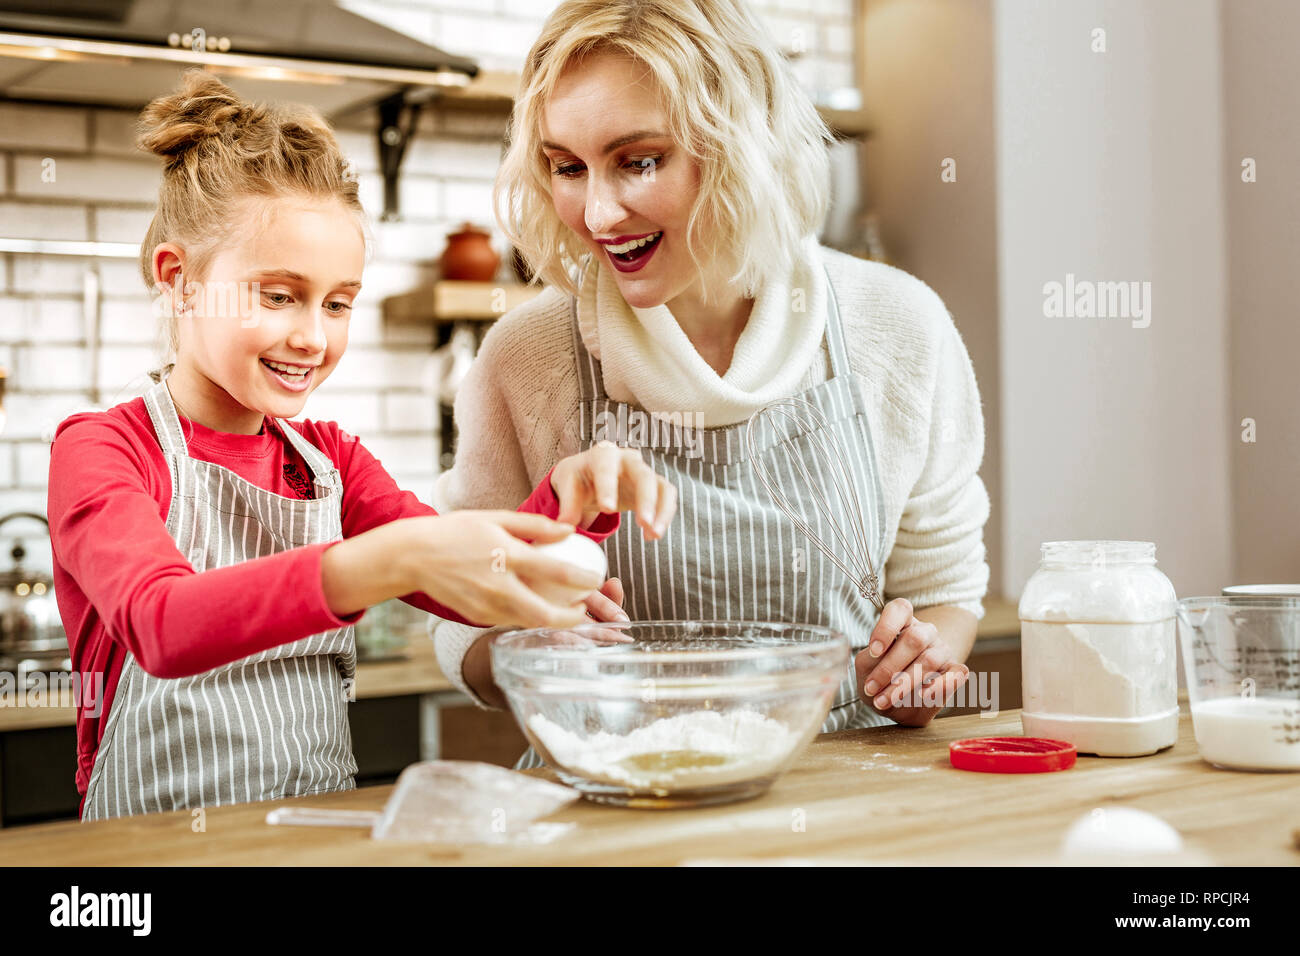 Smiling light-haired little child being entertained with cooking - Stock Image